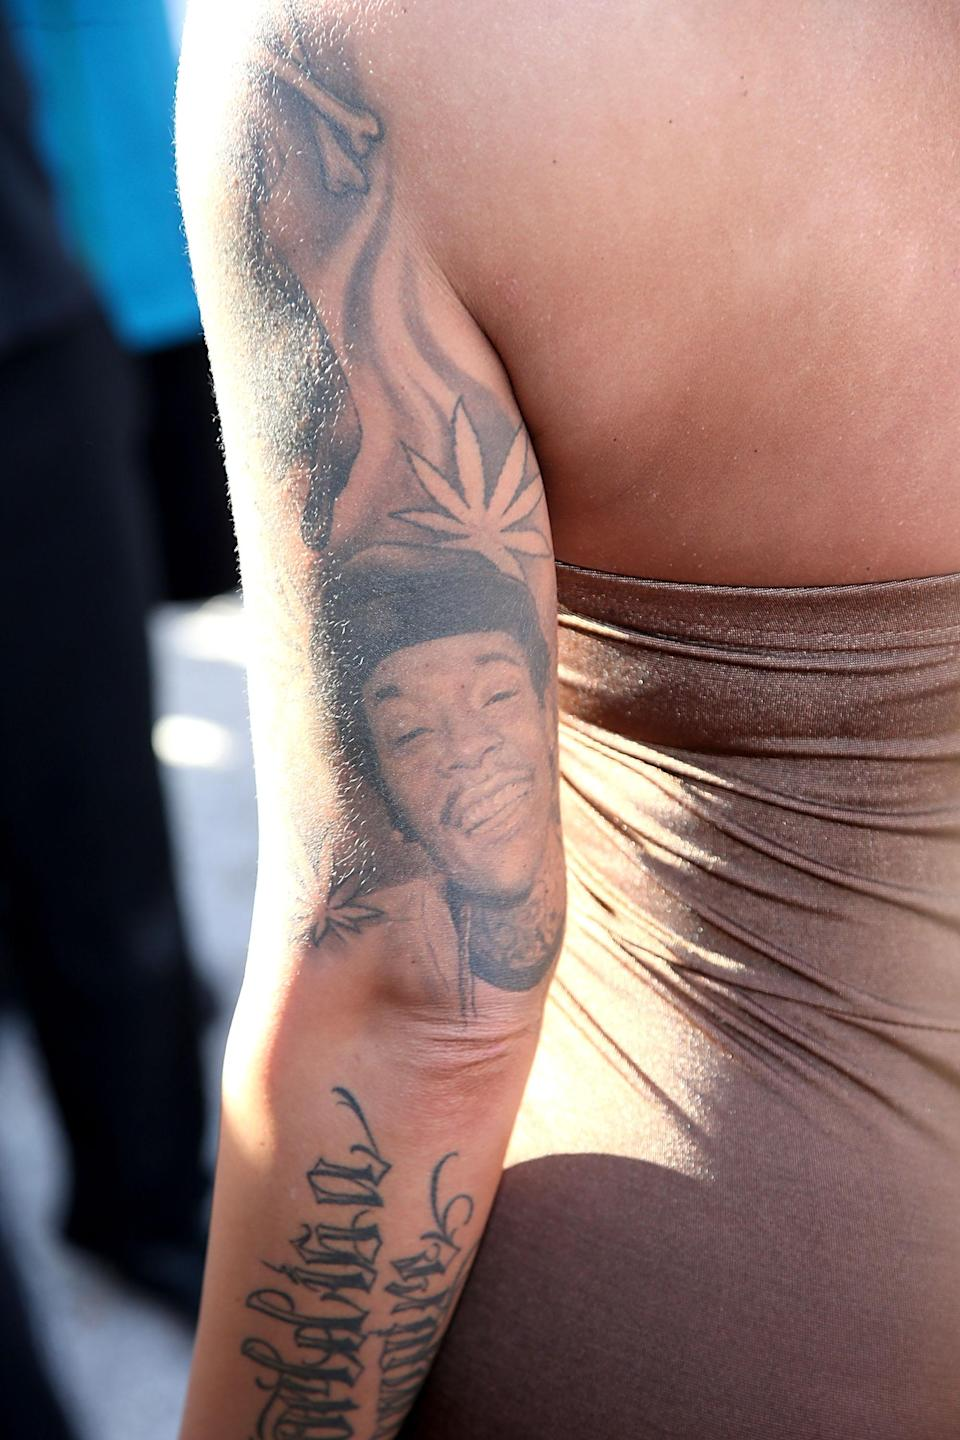 Amber Rose had Wiz Khalifa's face on her arm once upon a time. She's had it covered up post breakup. (Photo: Getty Images)